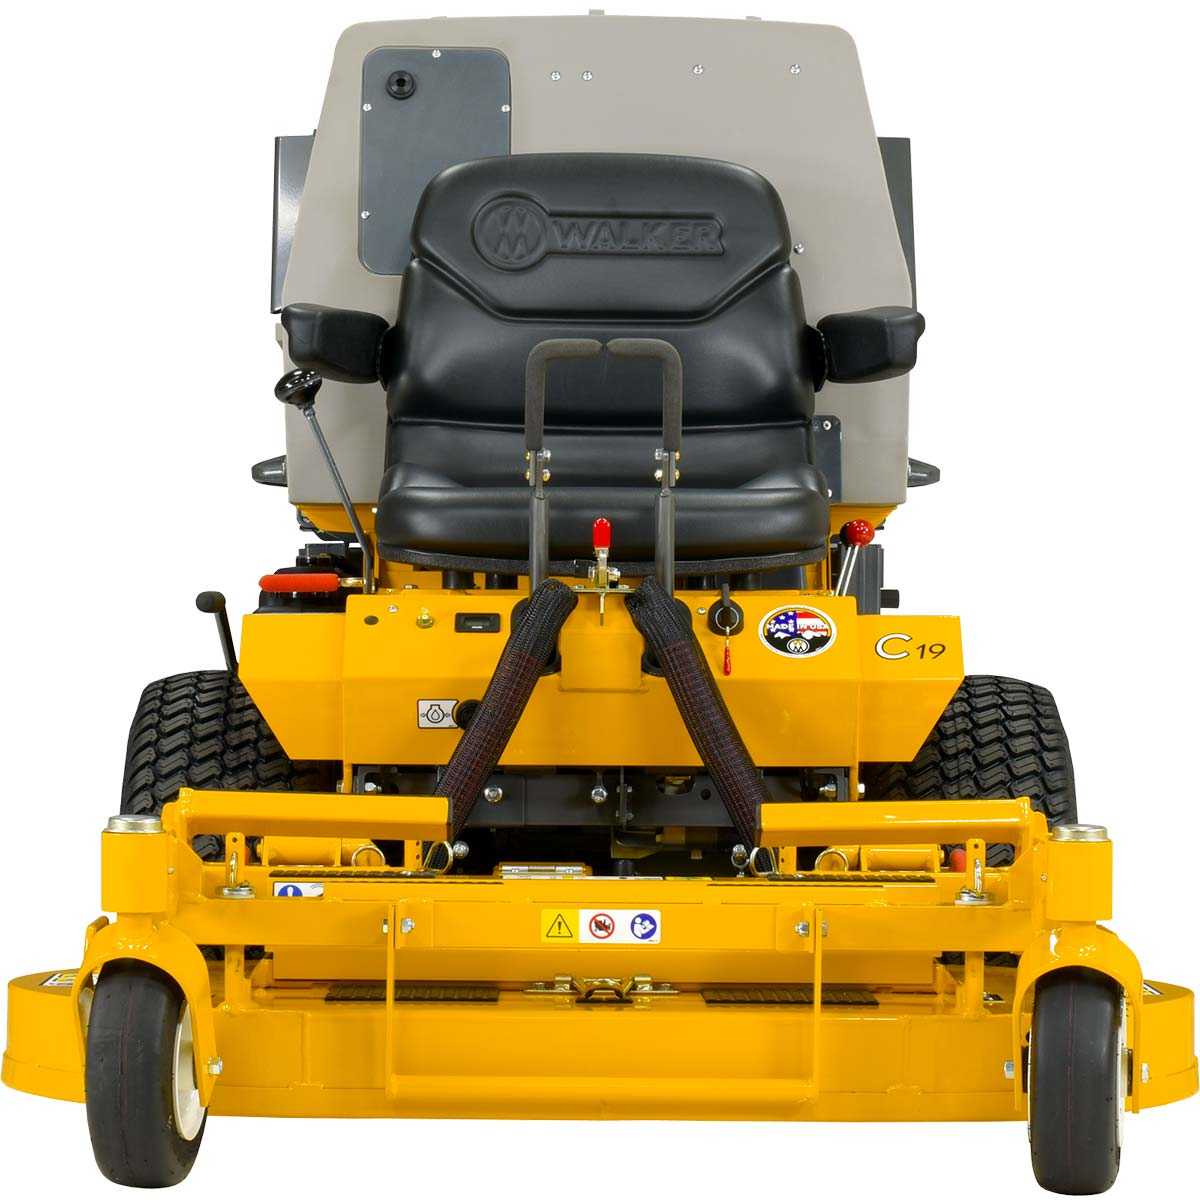 Walker MC19 mower - narrow profile for close landscape work